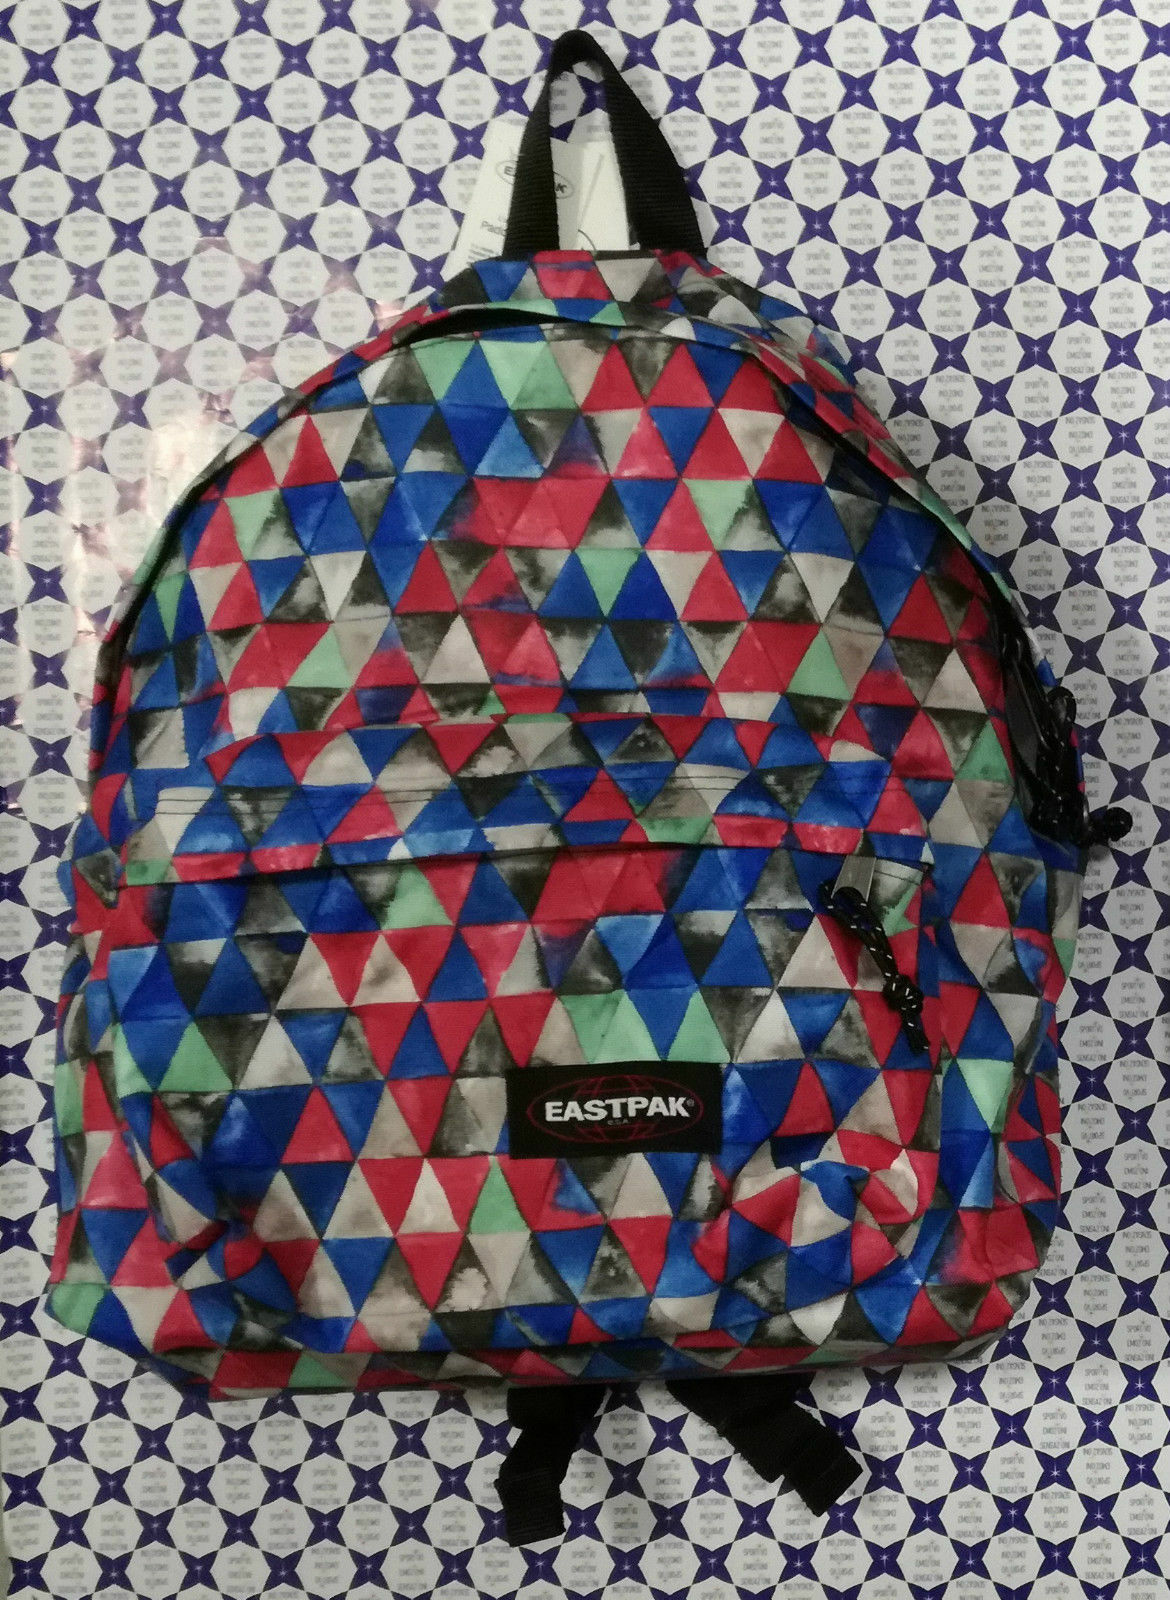 Borsa Zaino Eastpak Padded  Pak - Azzurro Fucsia Fantasia Triangoli - EK620  more affordable